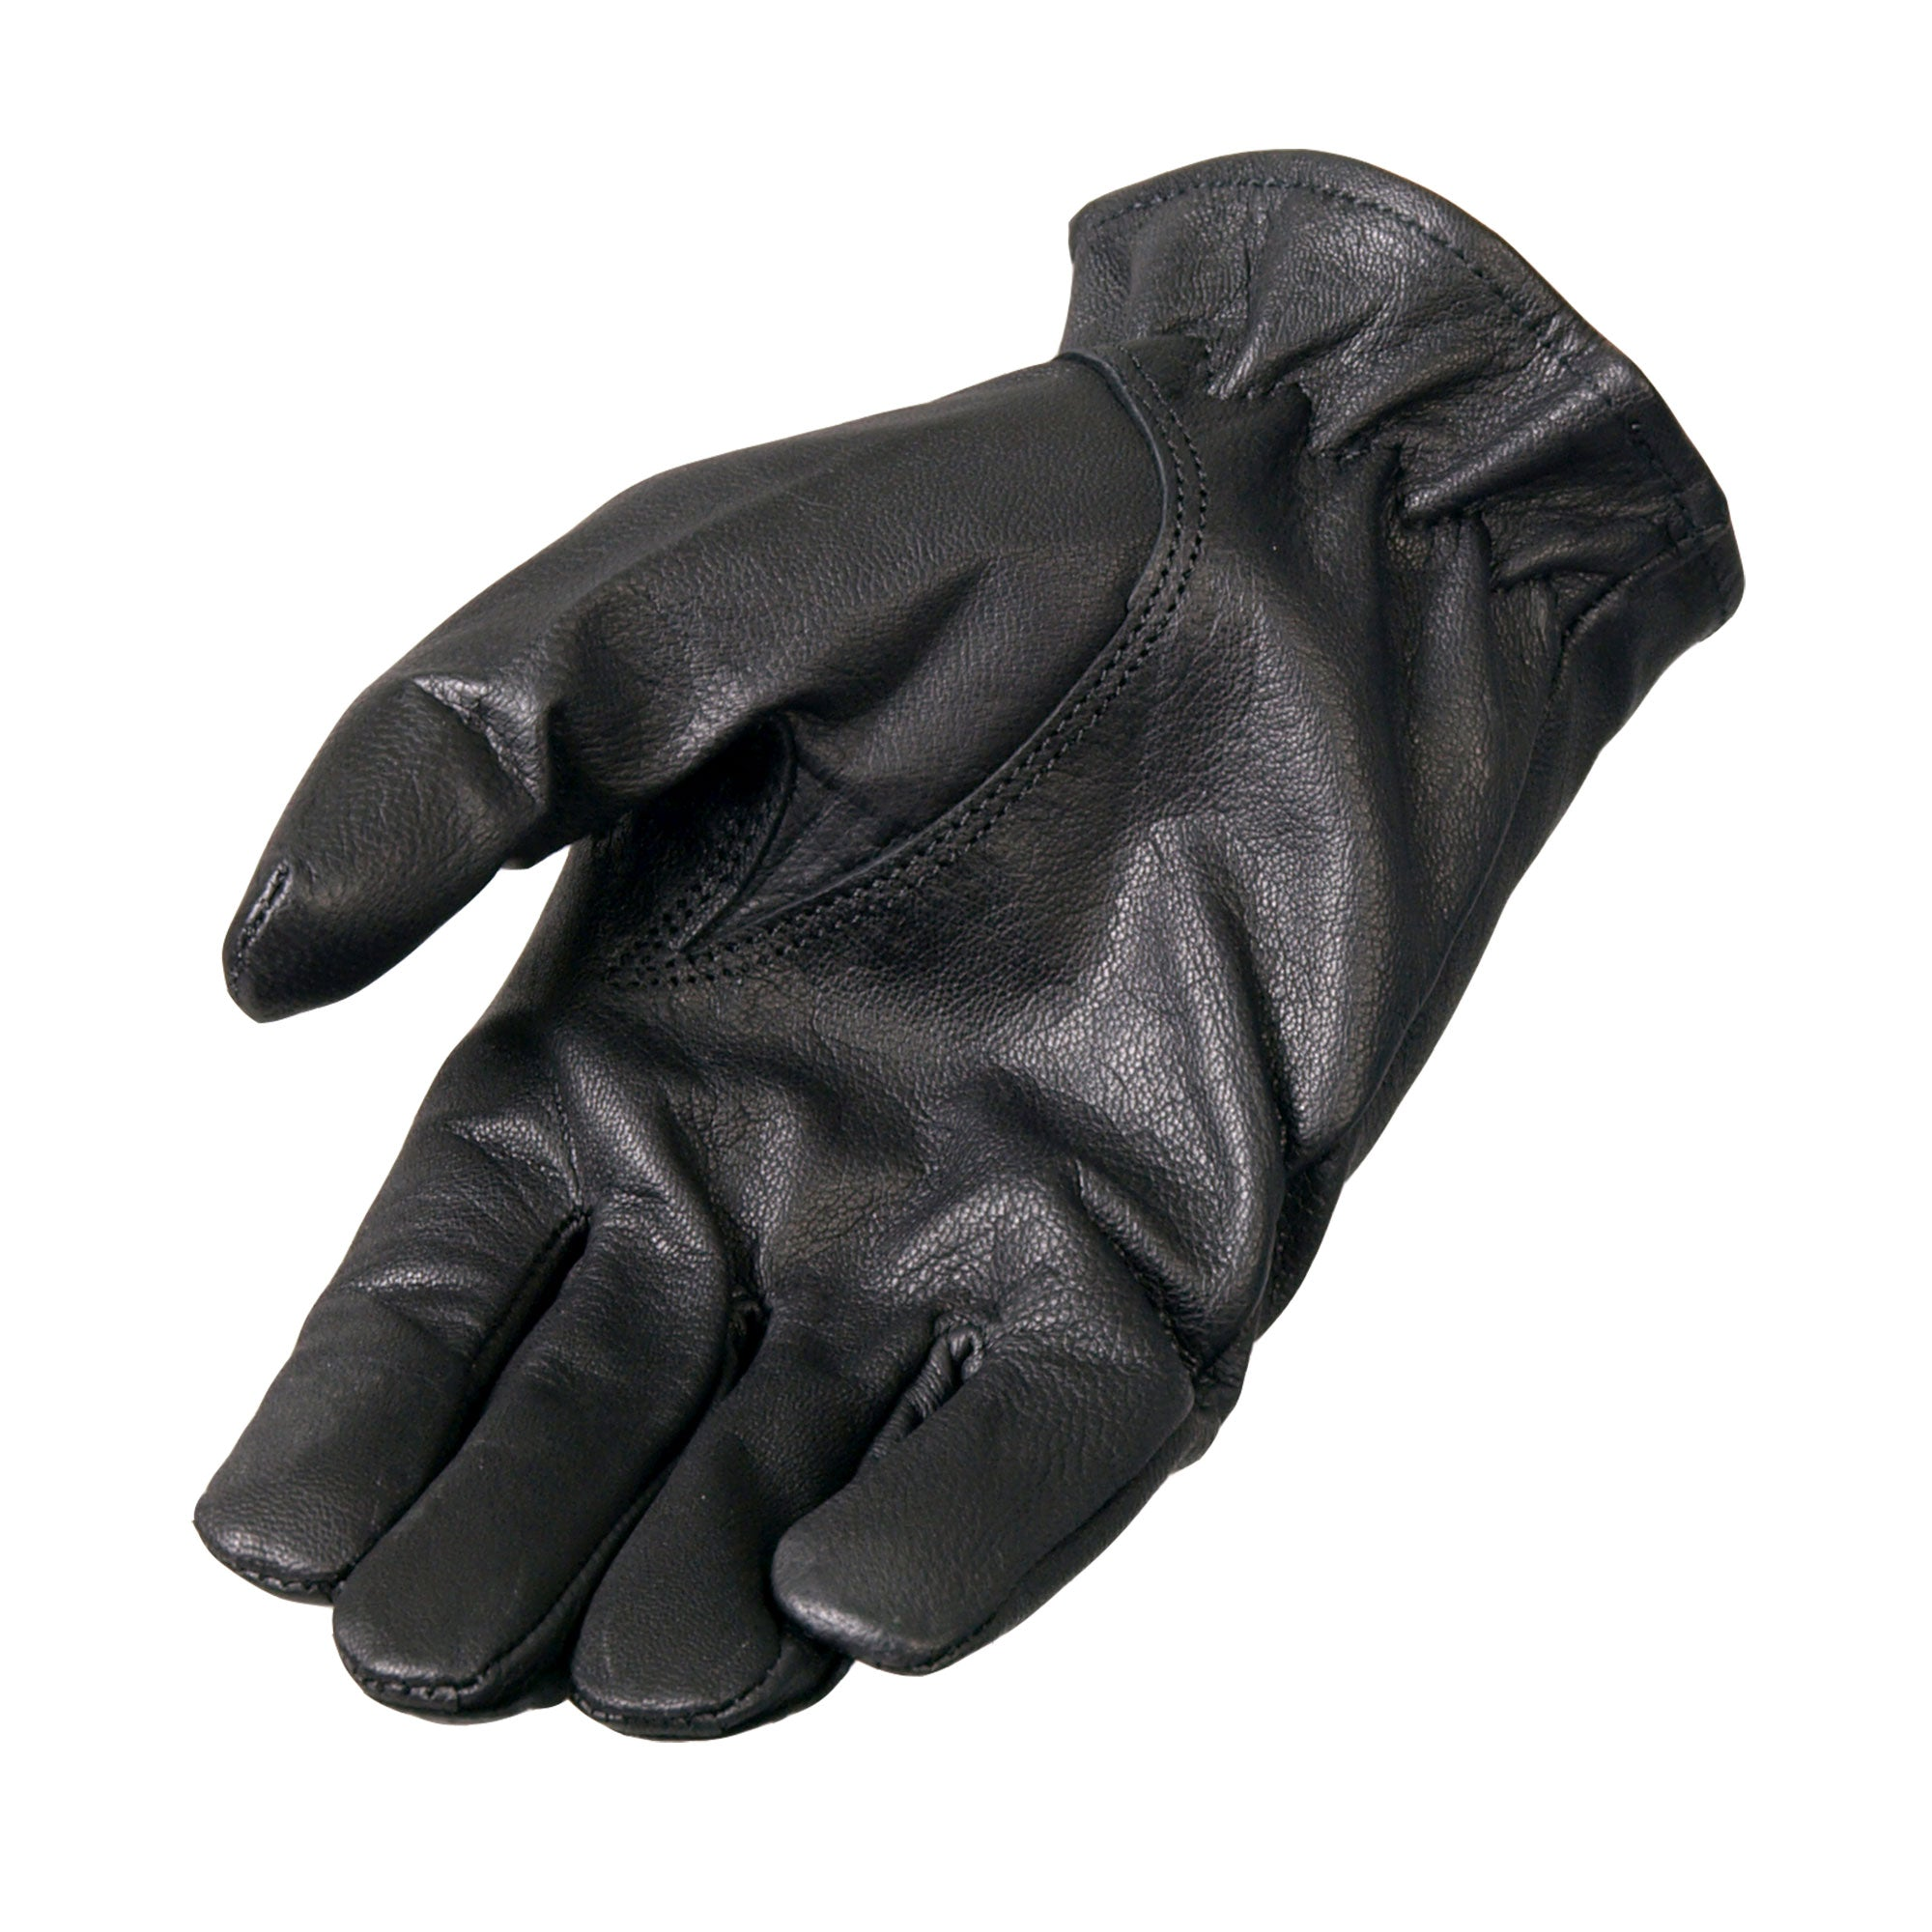 Hot Leathers Black Leather Driving Glove